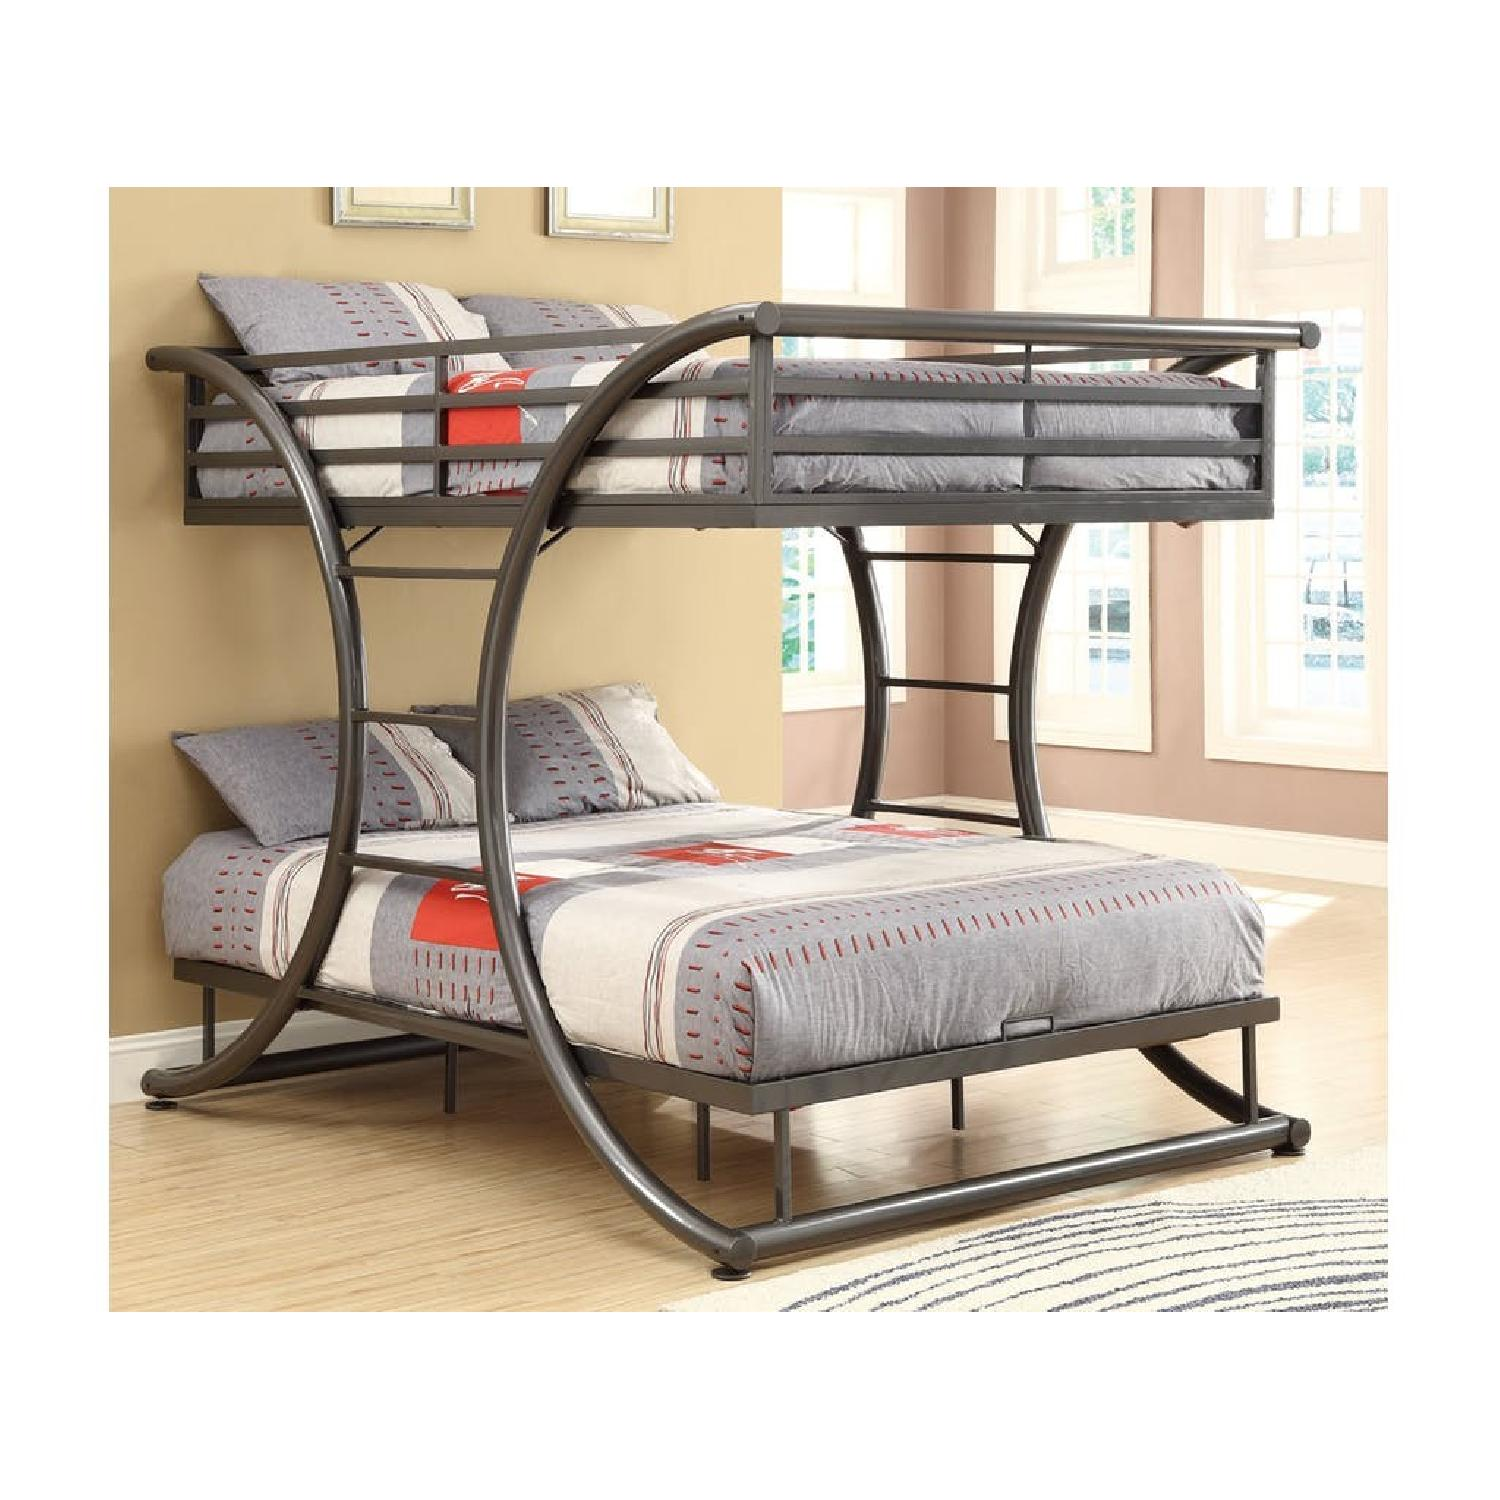 Full Over Full Steel Bunk Bed Finished in Gunmetal Finish - image-2